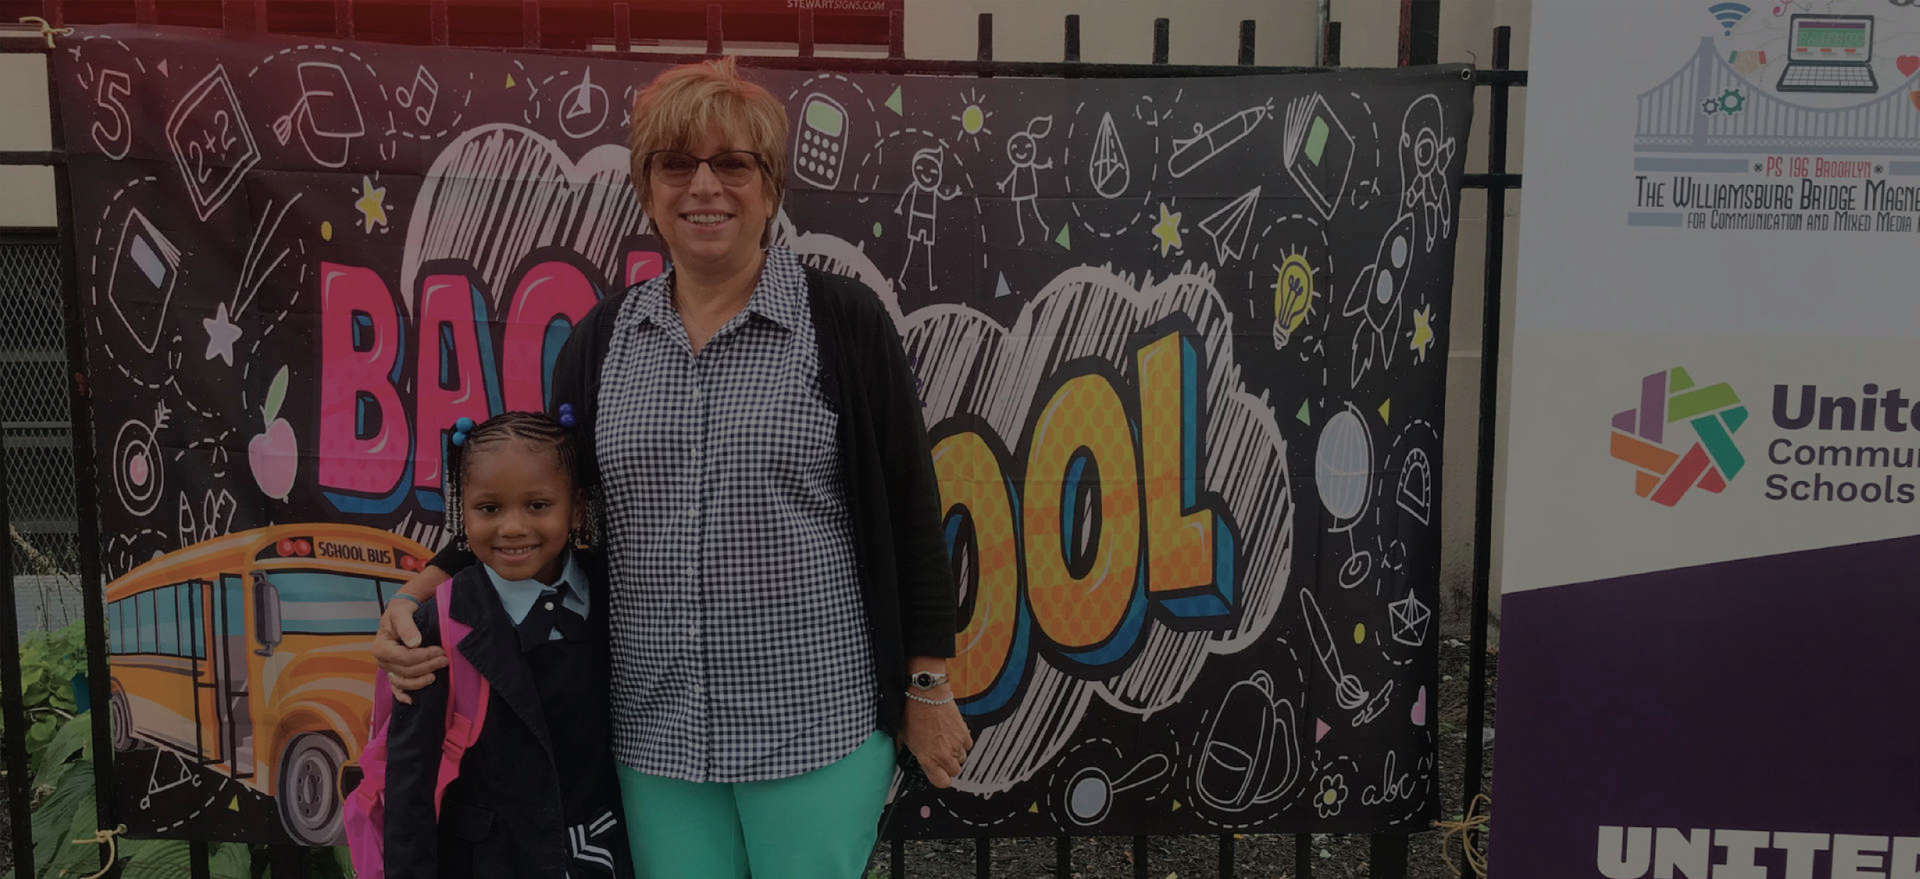 Principal Colon and a student in front of a Back to School banner